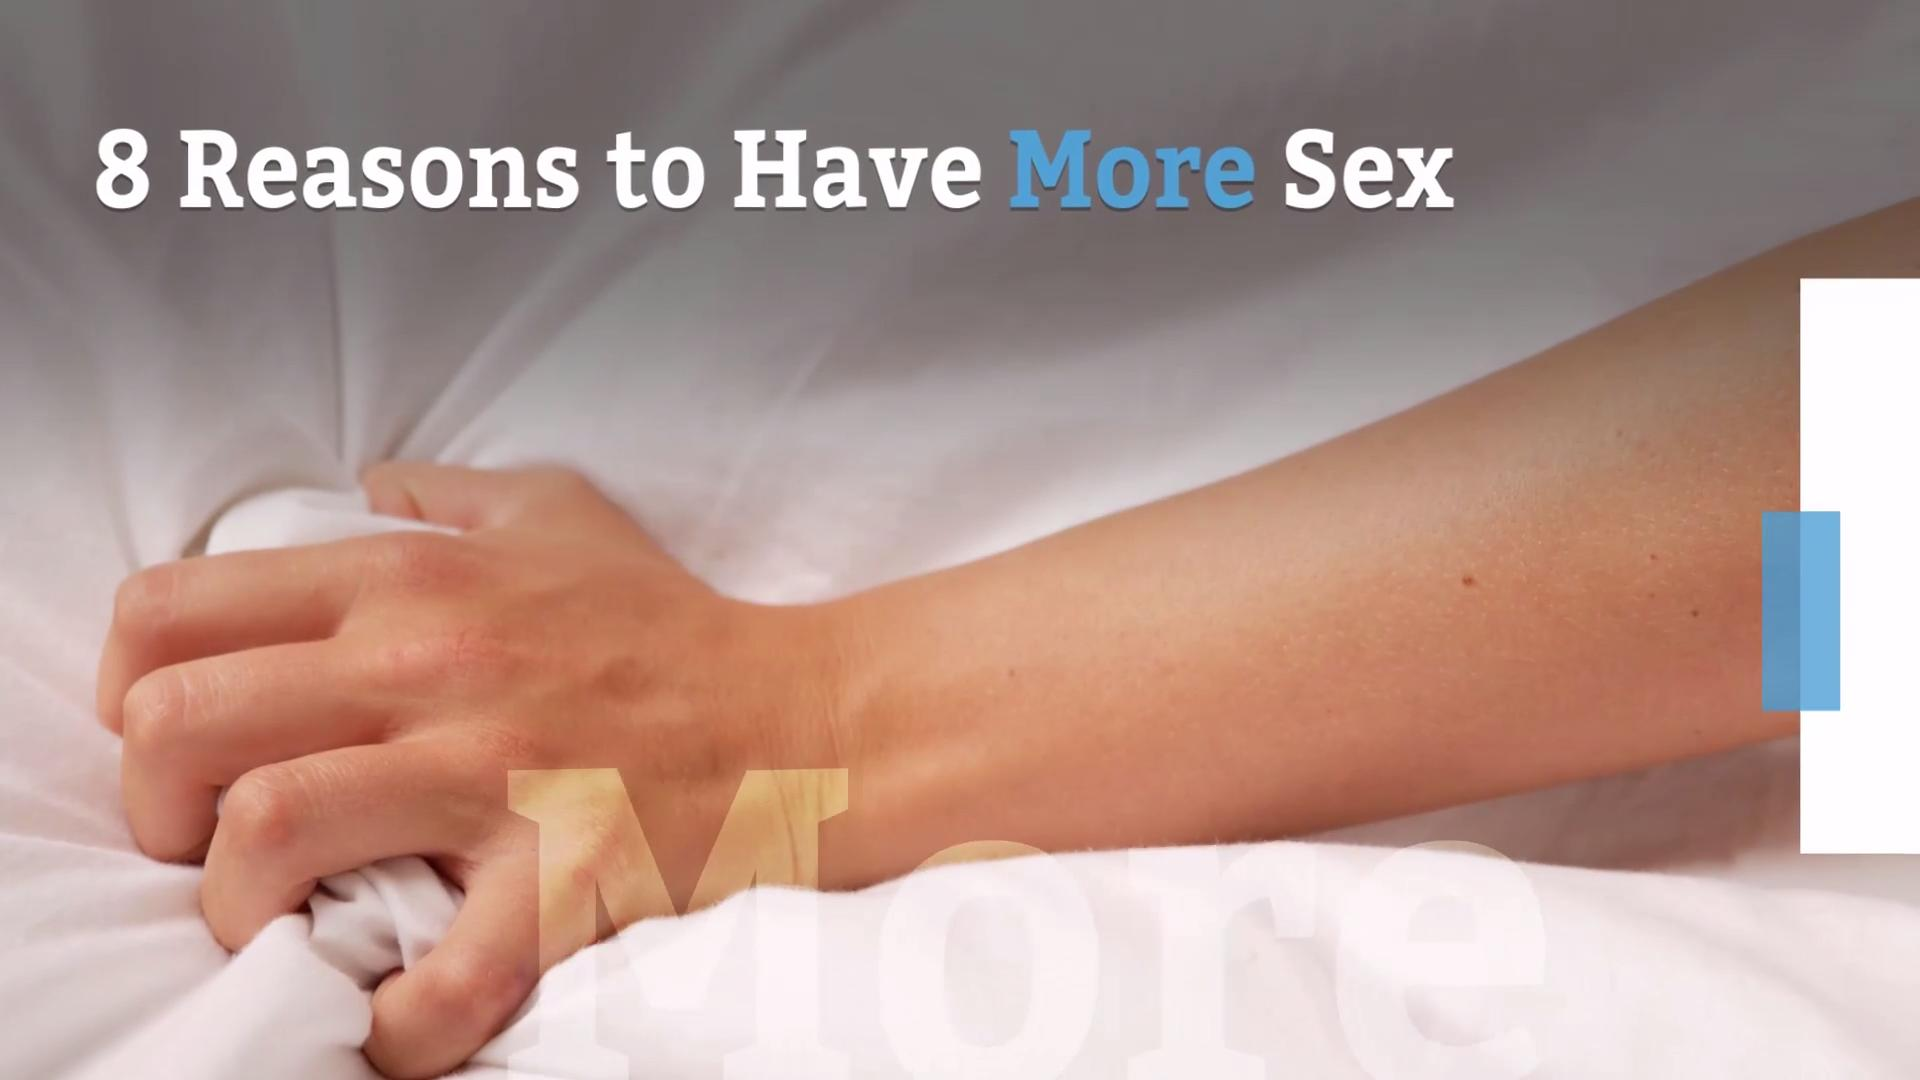 Common sex injuries